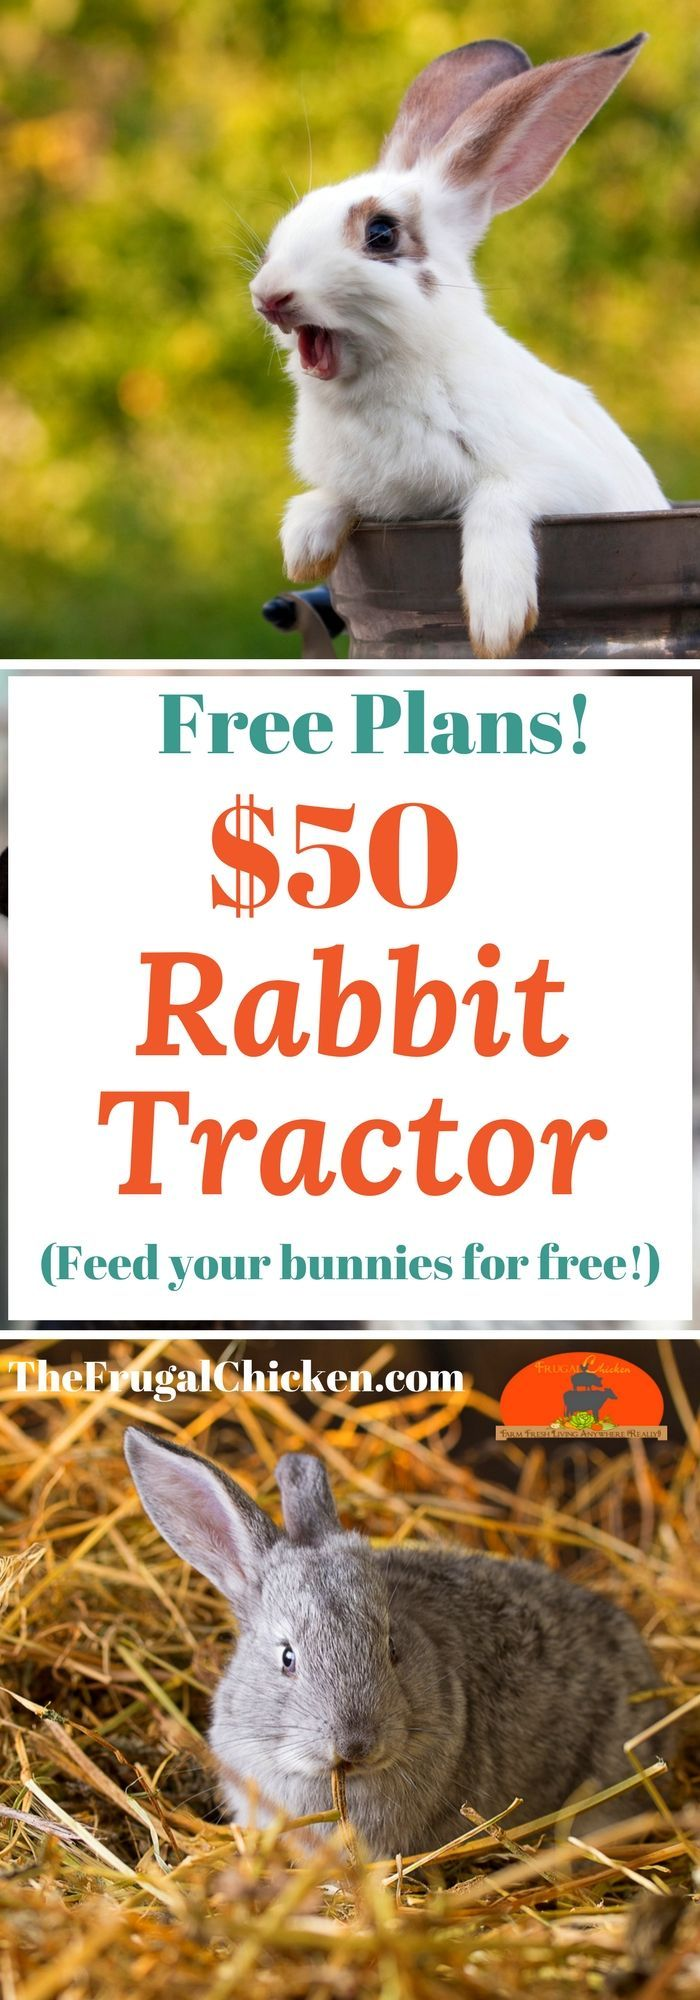 A rabbit tractor means you can feed at least part of your rabbit's diet for free. Here's how we built one for just $50!